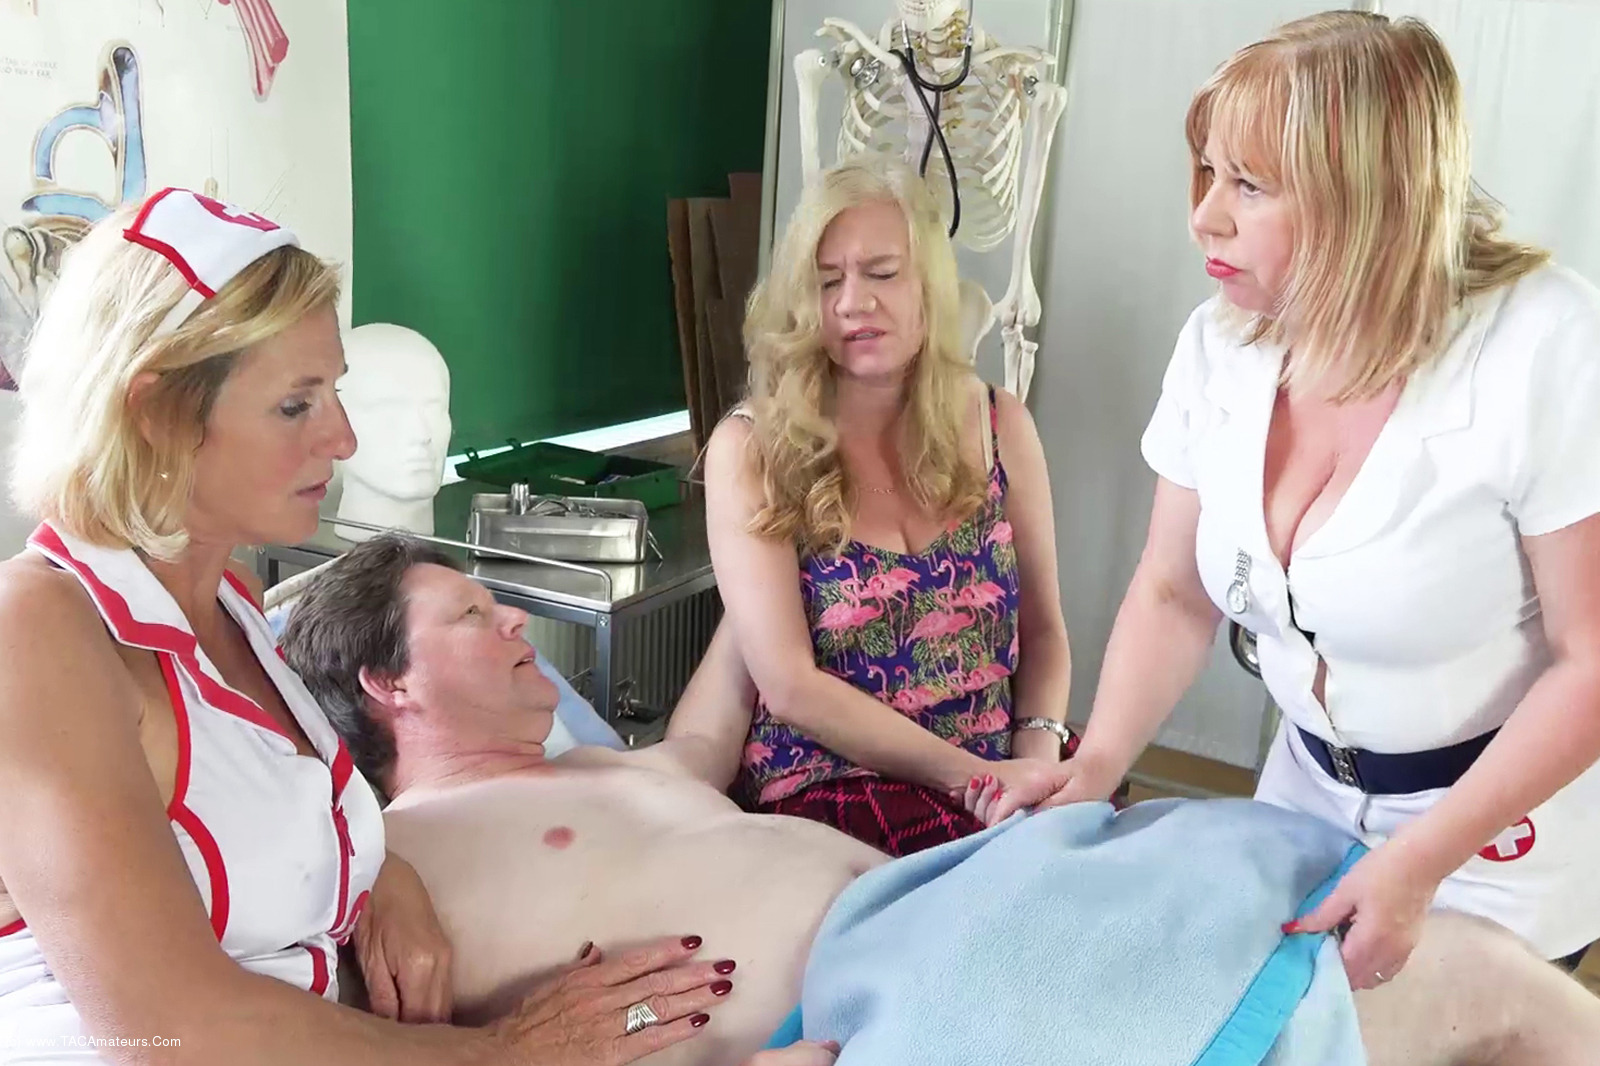 MollyMILF - The Patient Pt1 scene 0